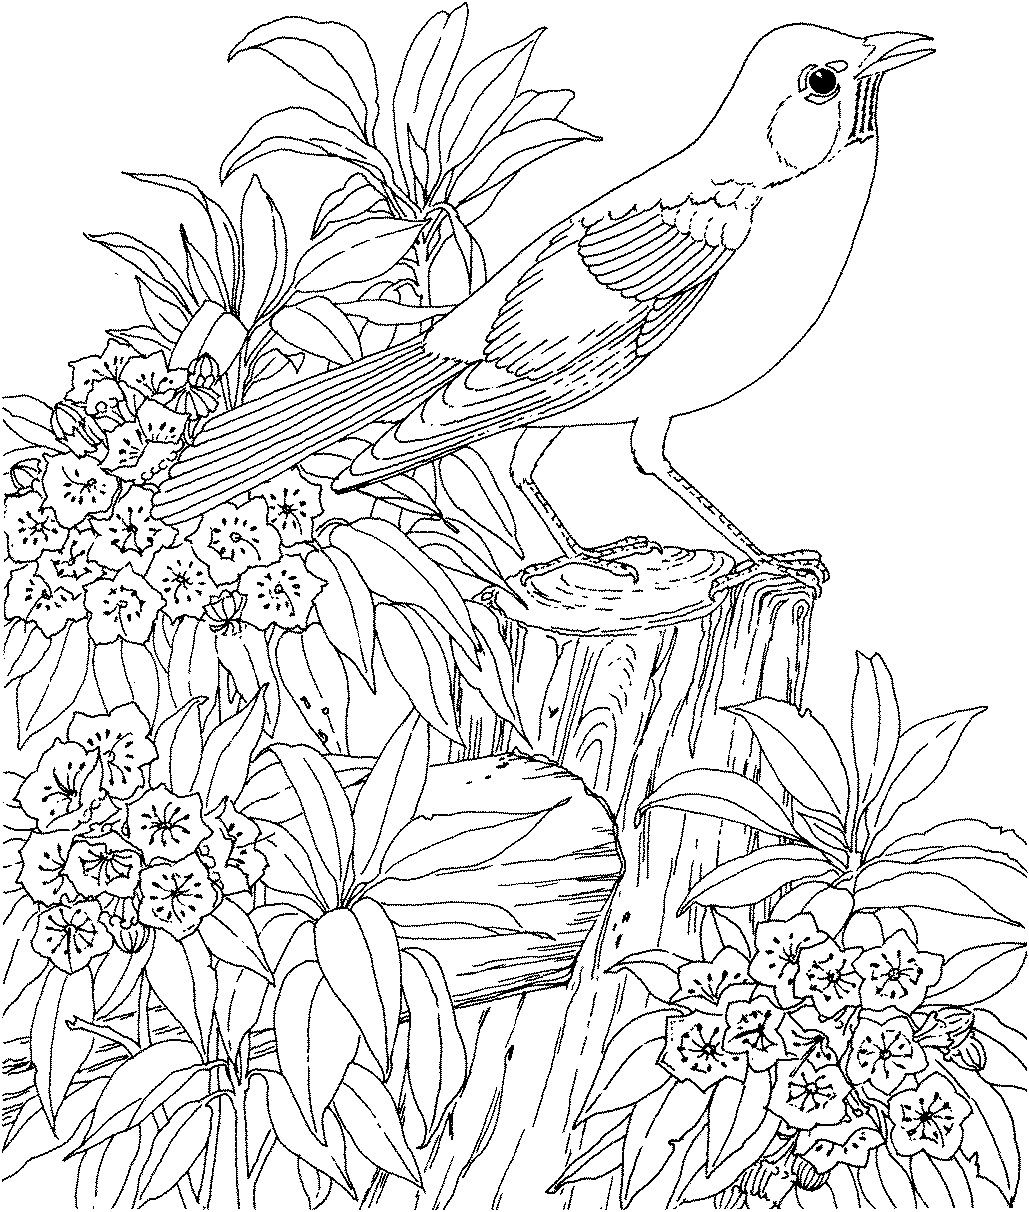 Online coloring pages for children to print - Colouring Page Birds Google Search